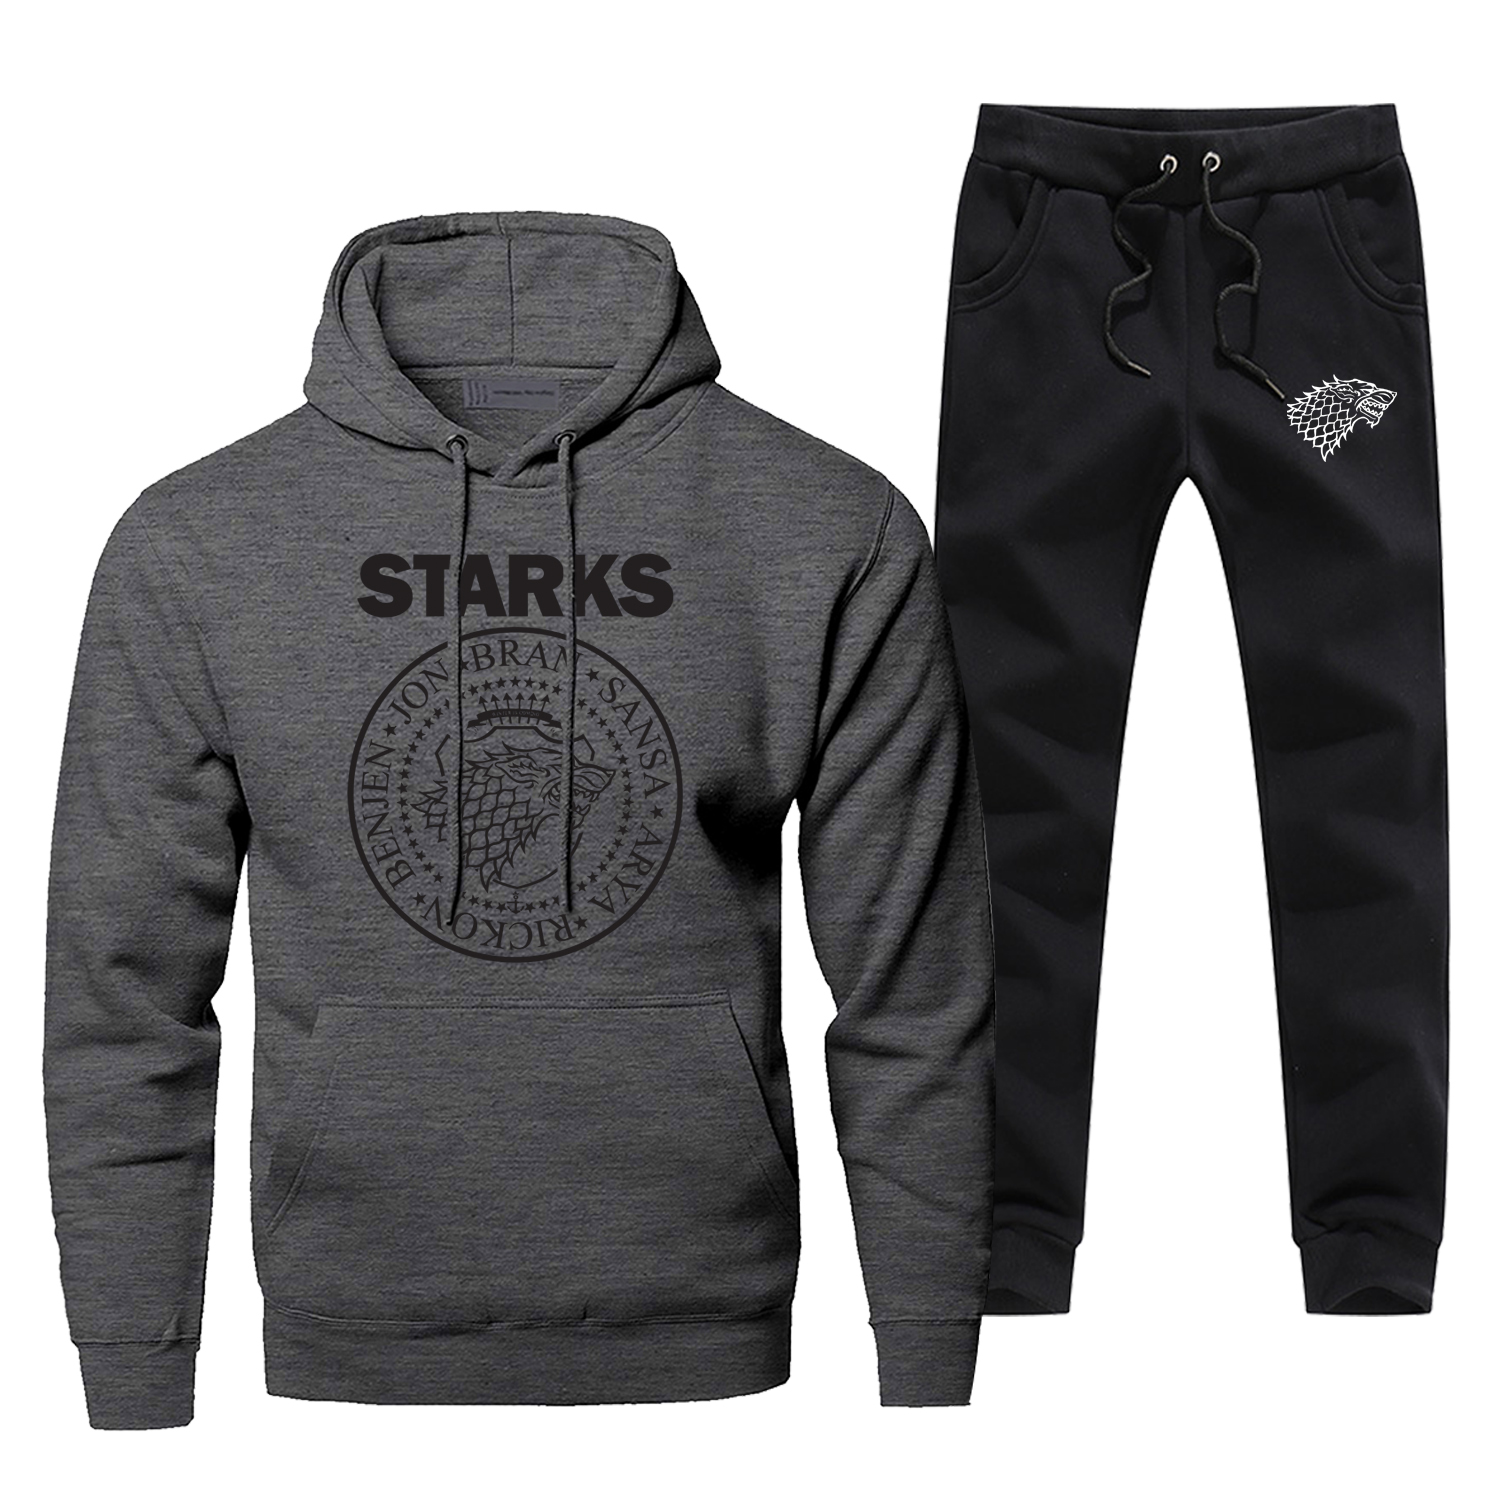 Game Of Thrones Sportsman Wear Fashion Comfortable House Stark Male Set Casual Hipster Wolf Arya Stark Pants Sweatshirt Men Suit